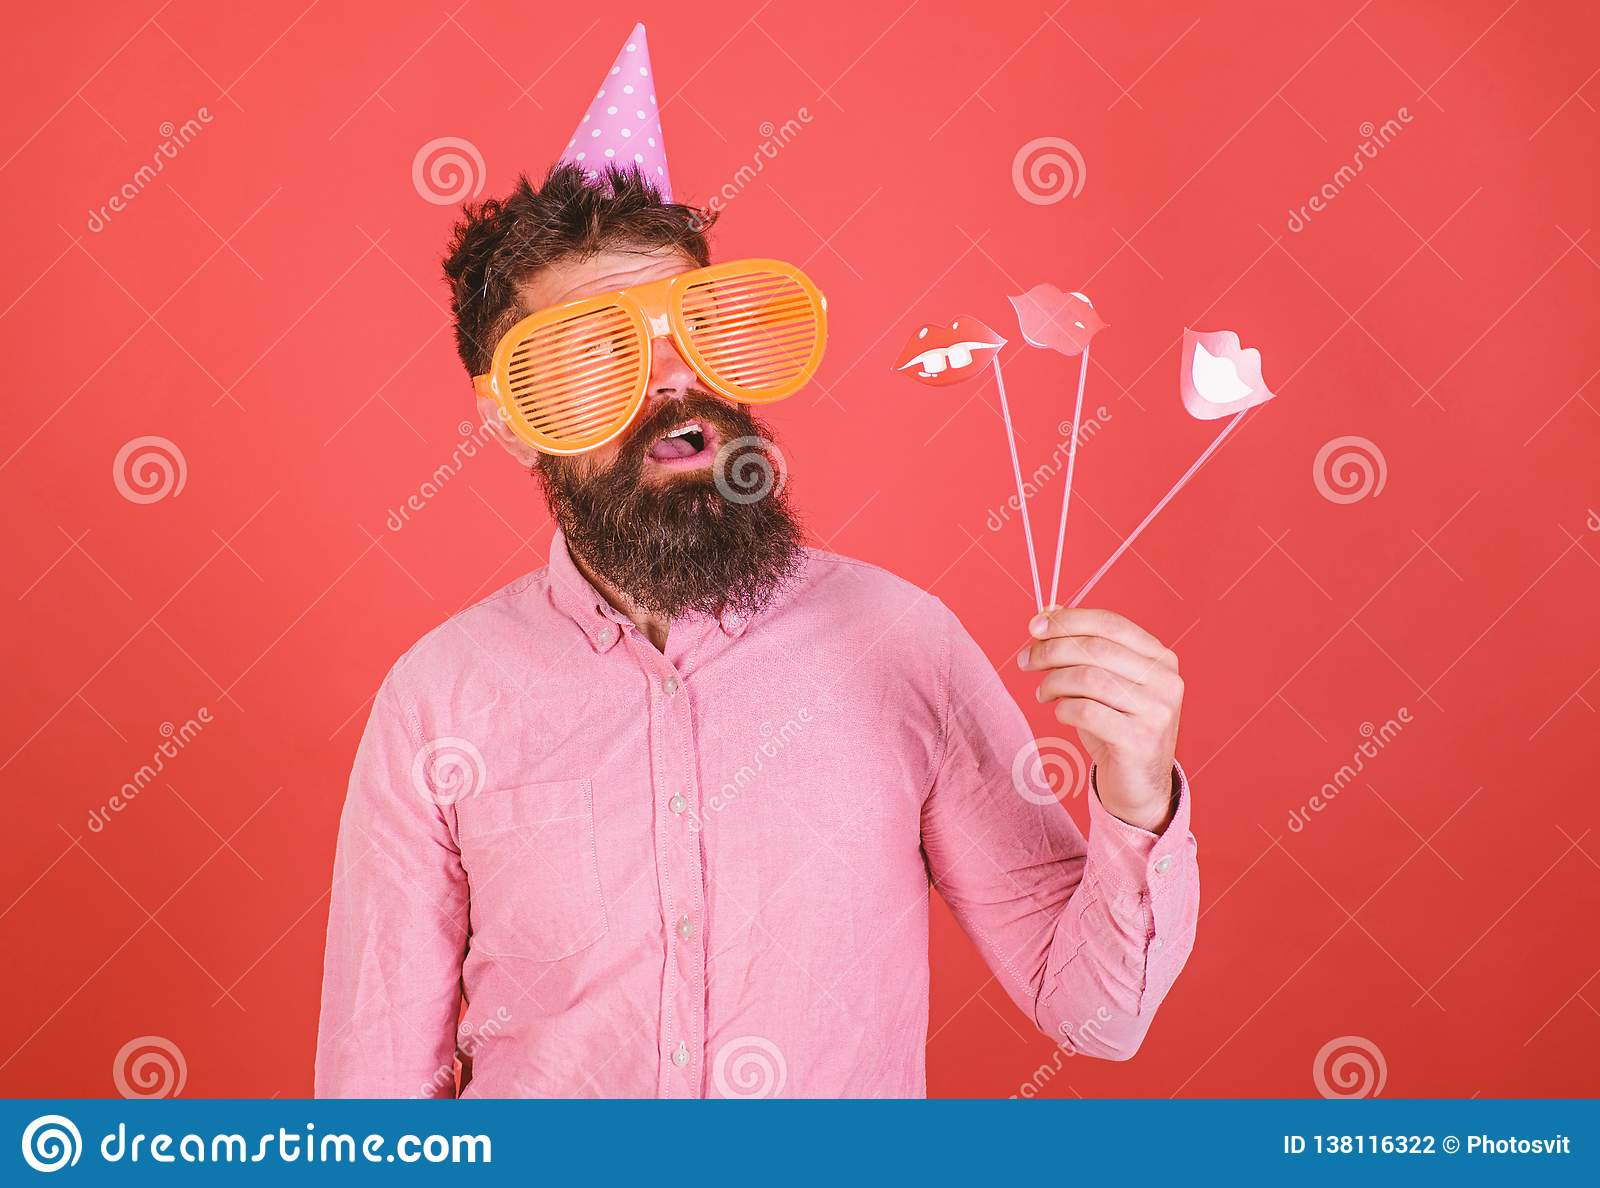 Emotional Diversity Concept  Guy In Party Hat Celebrate, Posing With